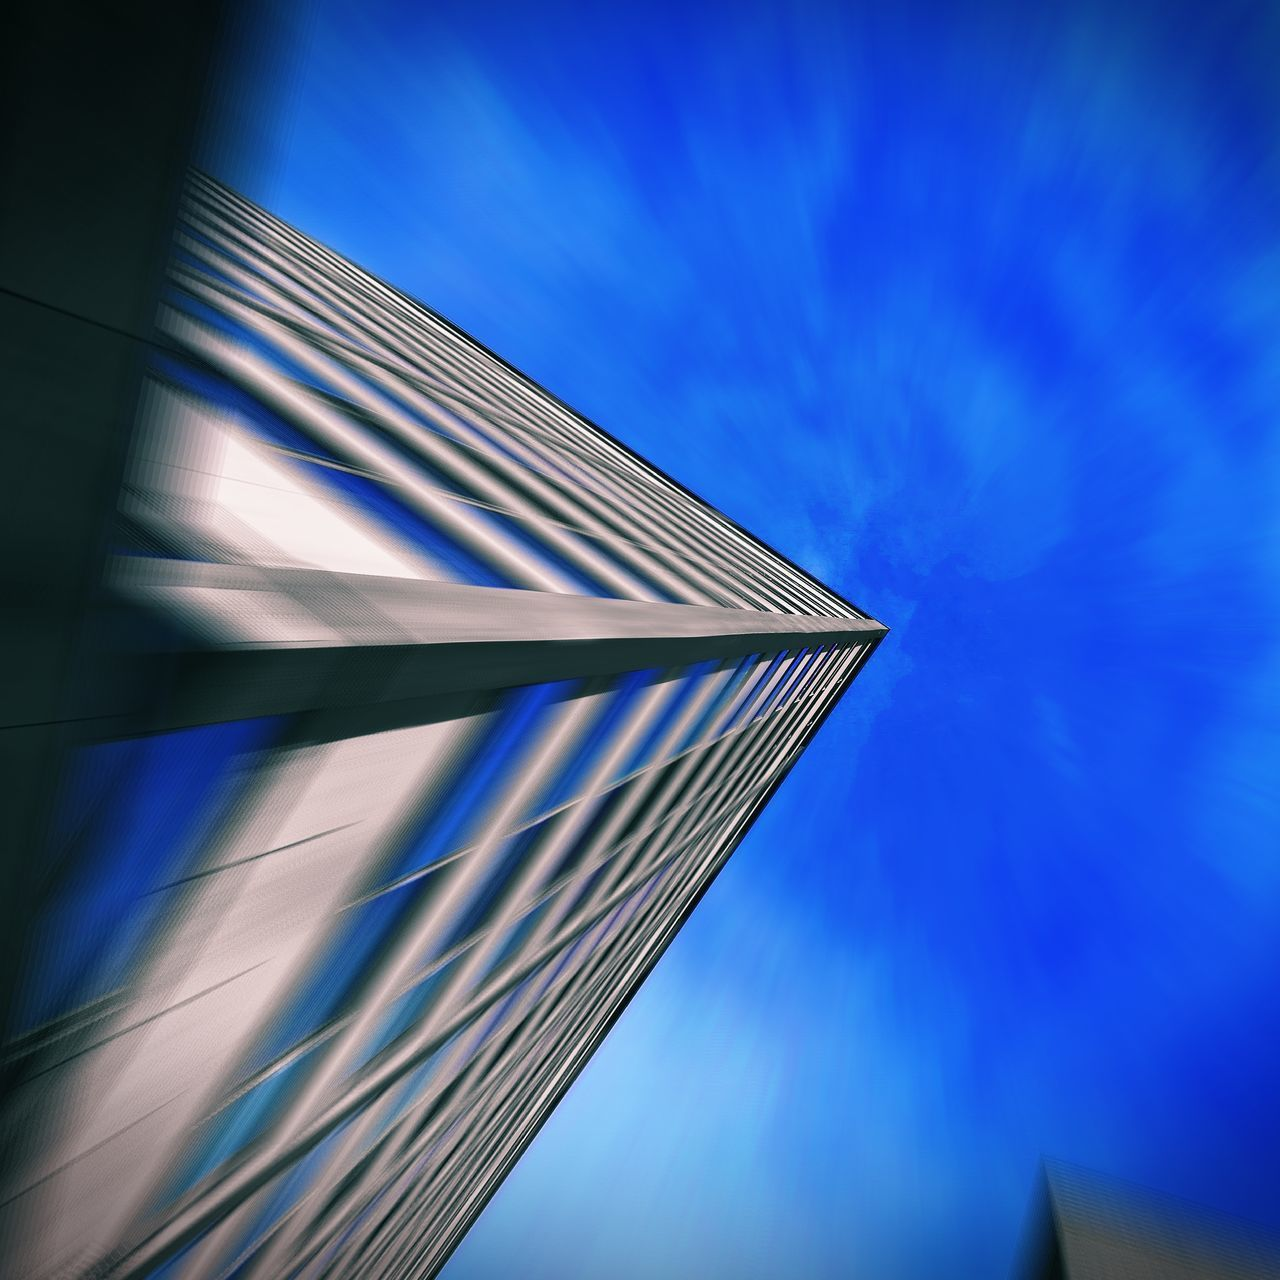 Architecture Built Structure Blue Low Angle View Building Exterior No People Sky Outdoors Day Modern City Close-up Zoom Blurred Motion Angles And Lines Geometric